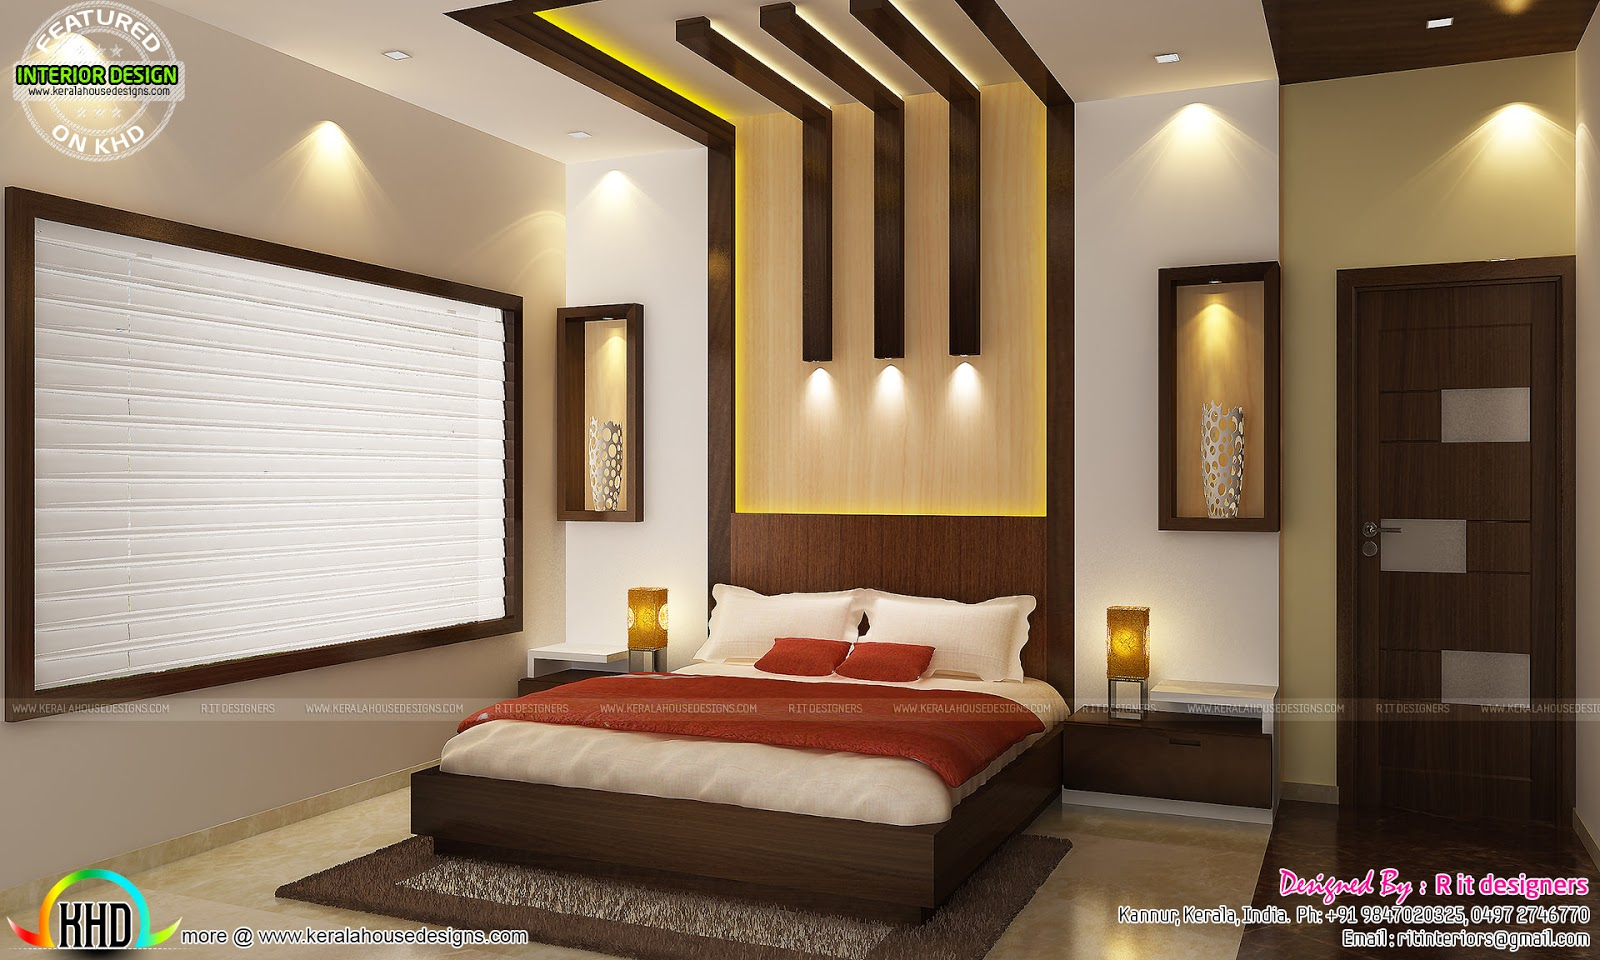 Kitchen Living Bedroom Dining Interior Decor Kerala: home interior design bedroom